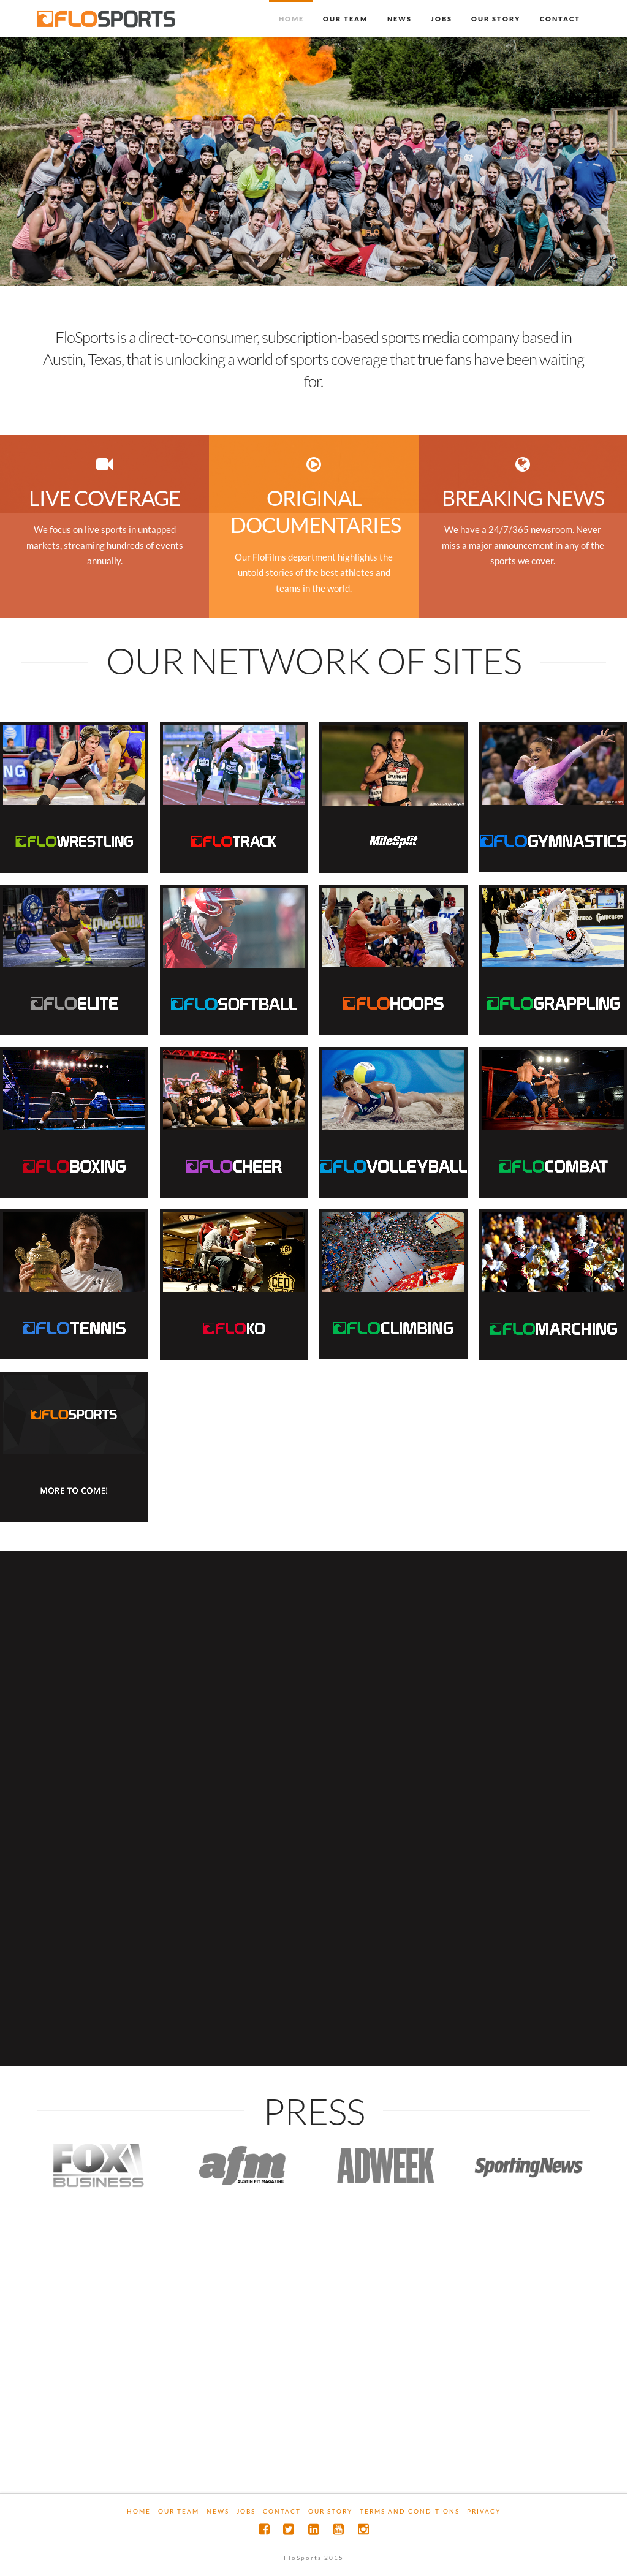 03d193090be66 Flosports Competitors, Revenue and Employees - Owler Company Profile